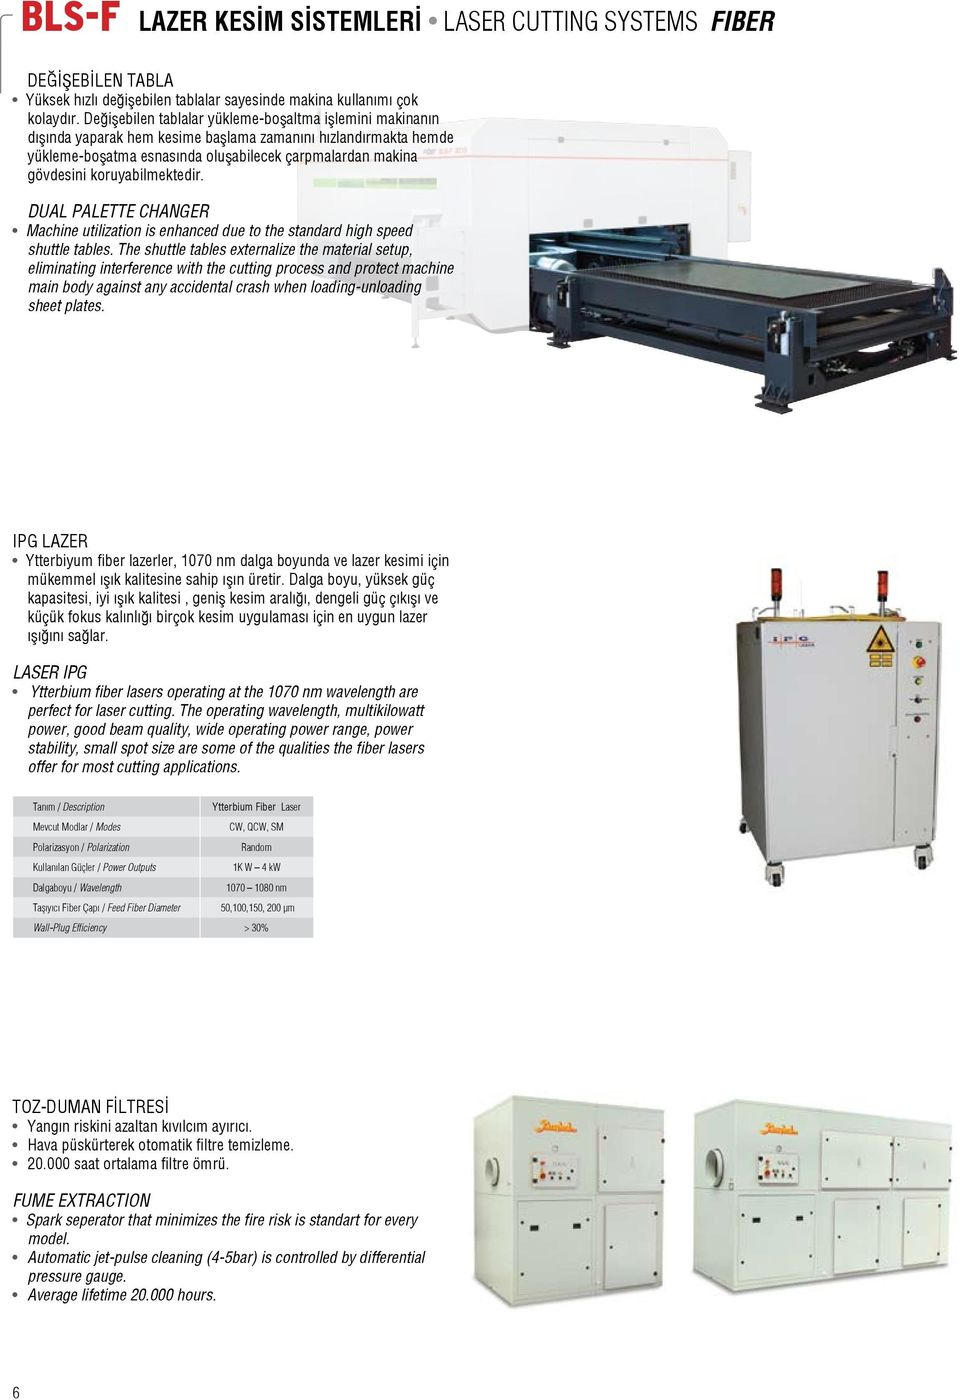 koruyabilmektedir. Dual Palette Changer Machine utilization is enhanced due to the standard high speed shuttle tables.